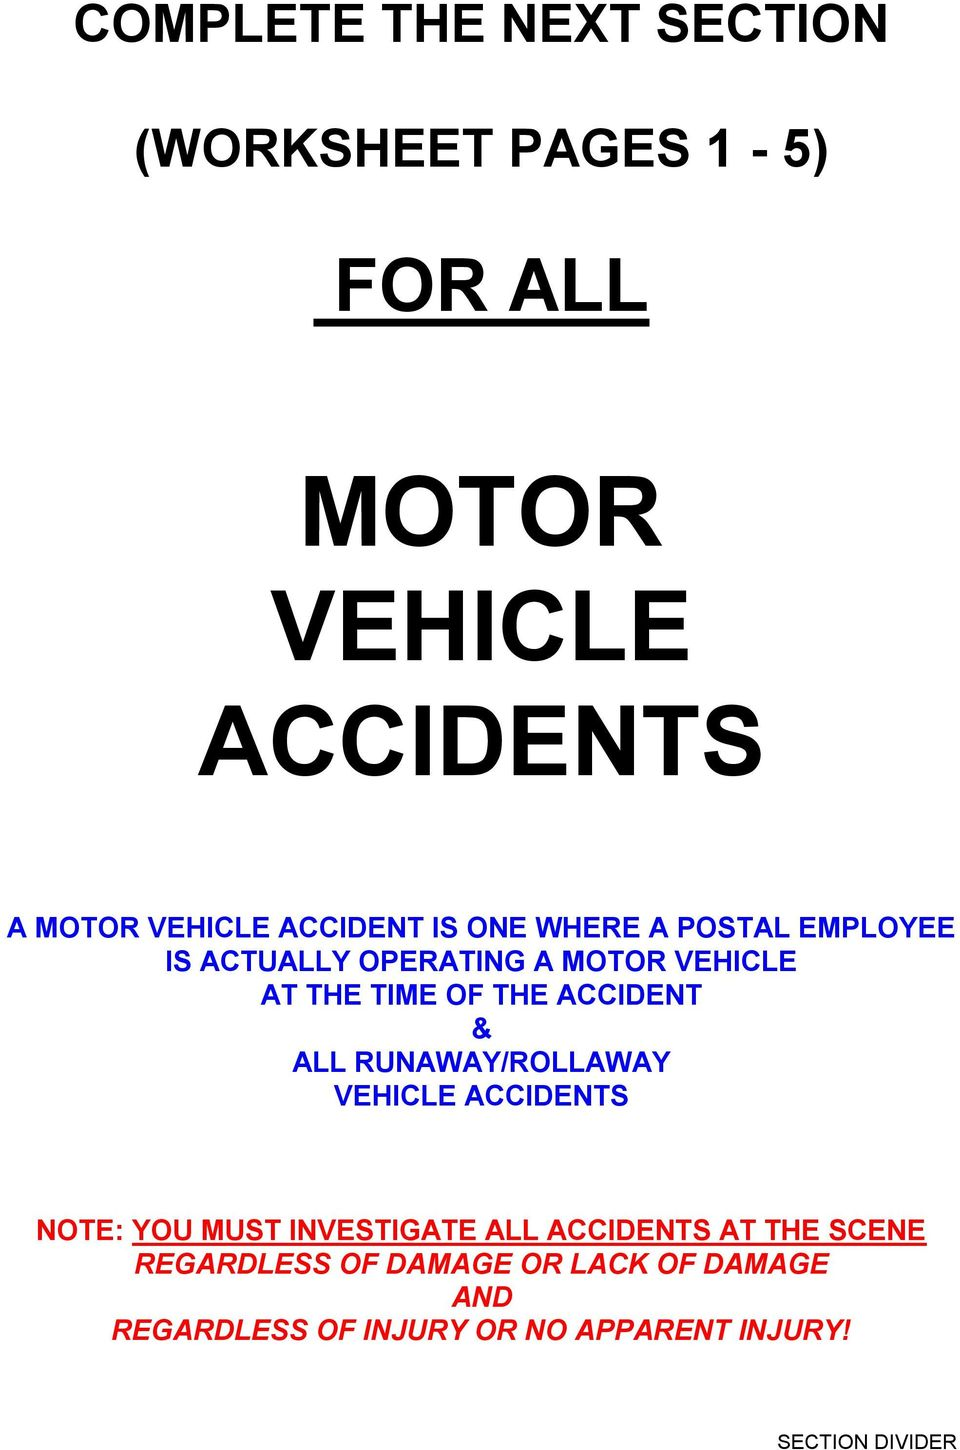 ACCIDENT & ALL RUNAWAY/ROLLAWAY VEHICLE ACCIDENTS NOTE: YOU MUST INVESTIGATE ALL ACCIDENTS AT THE